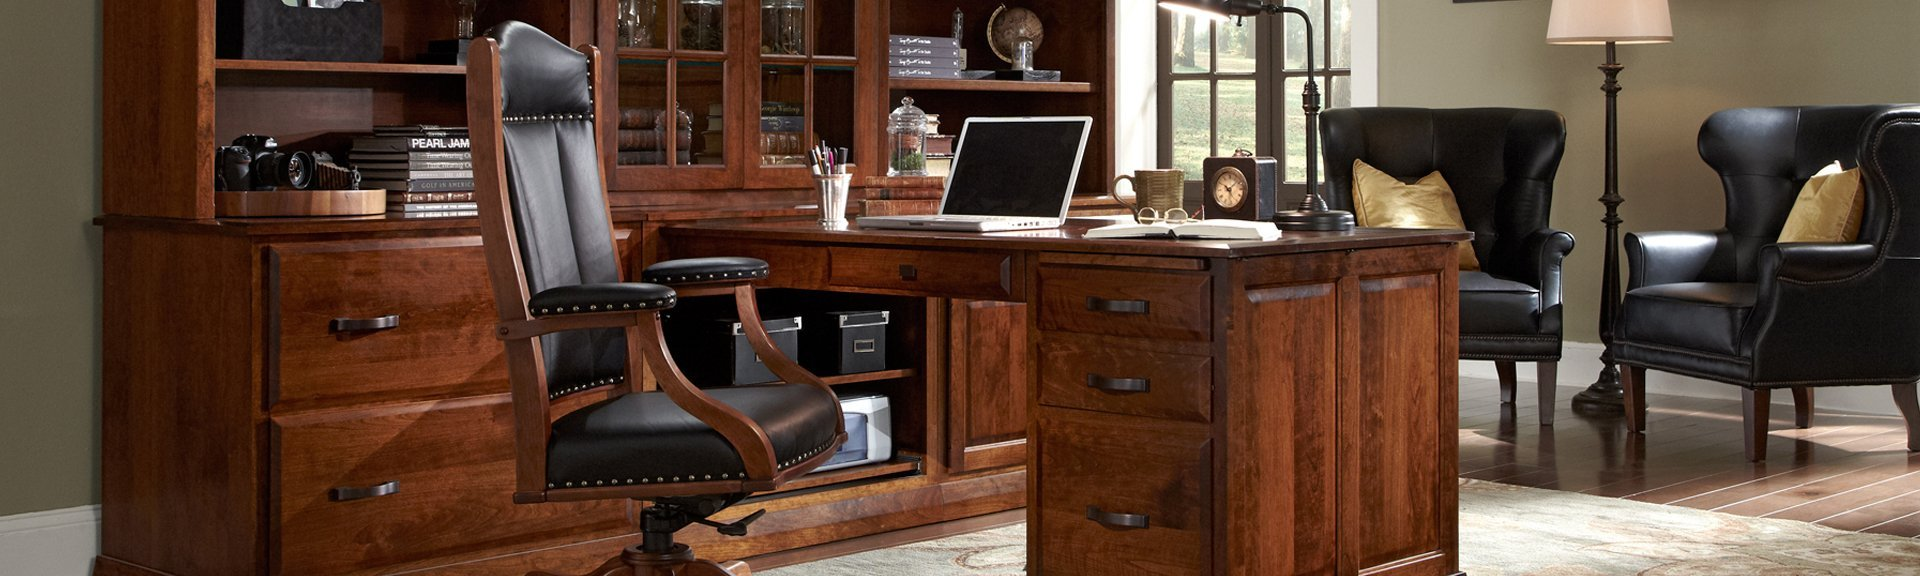 Picture of a Simply Amish Desk and Chair